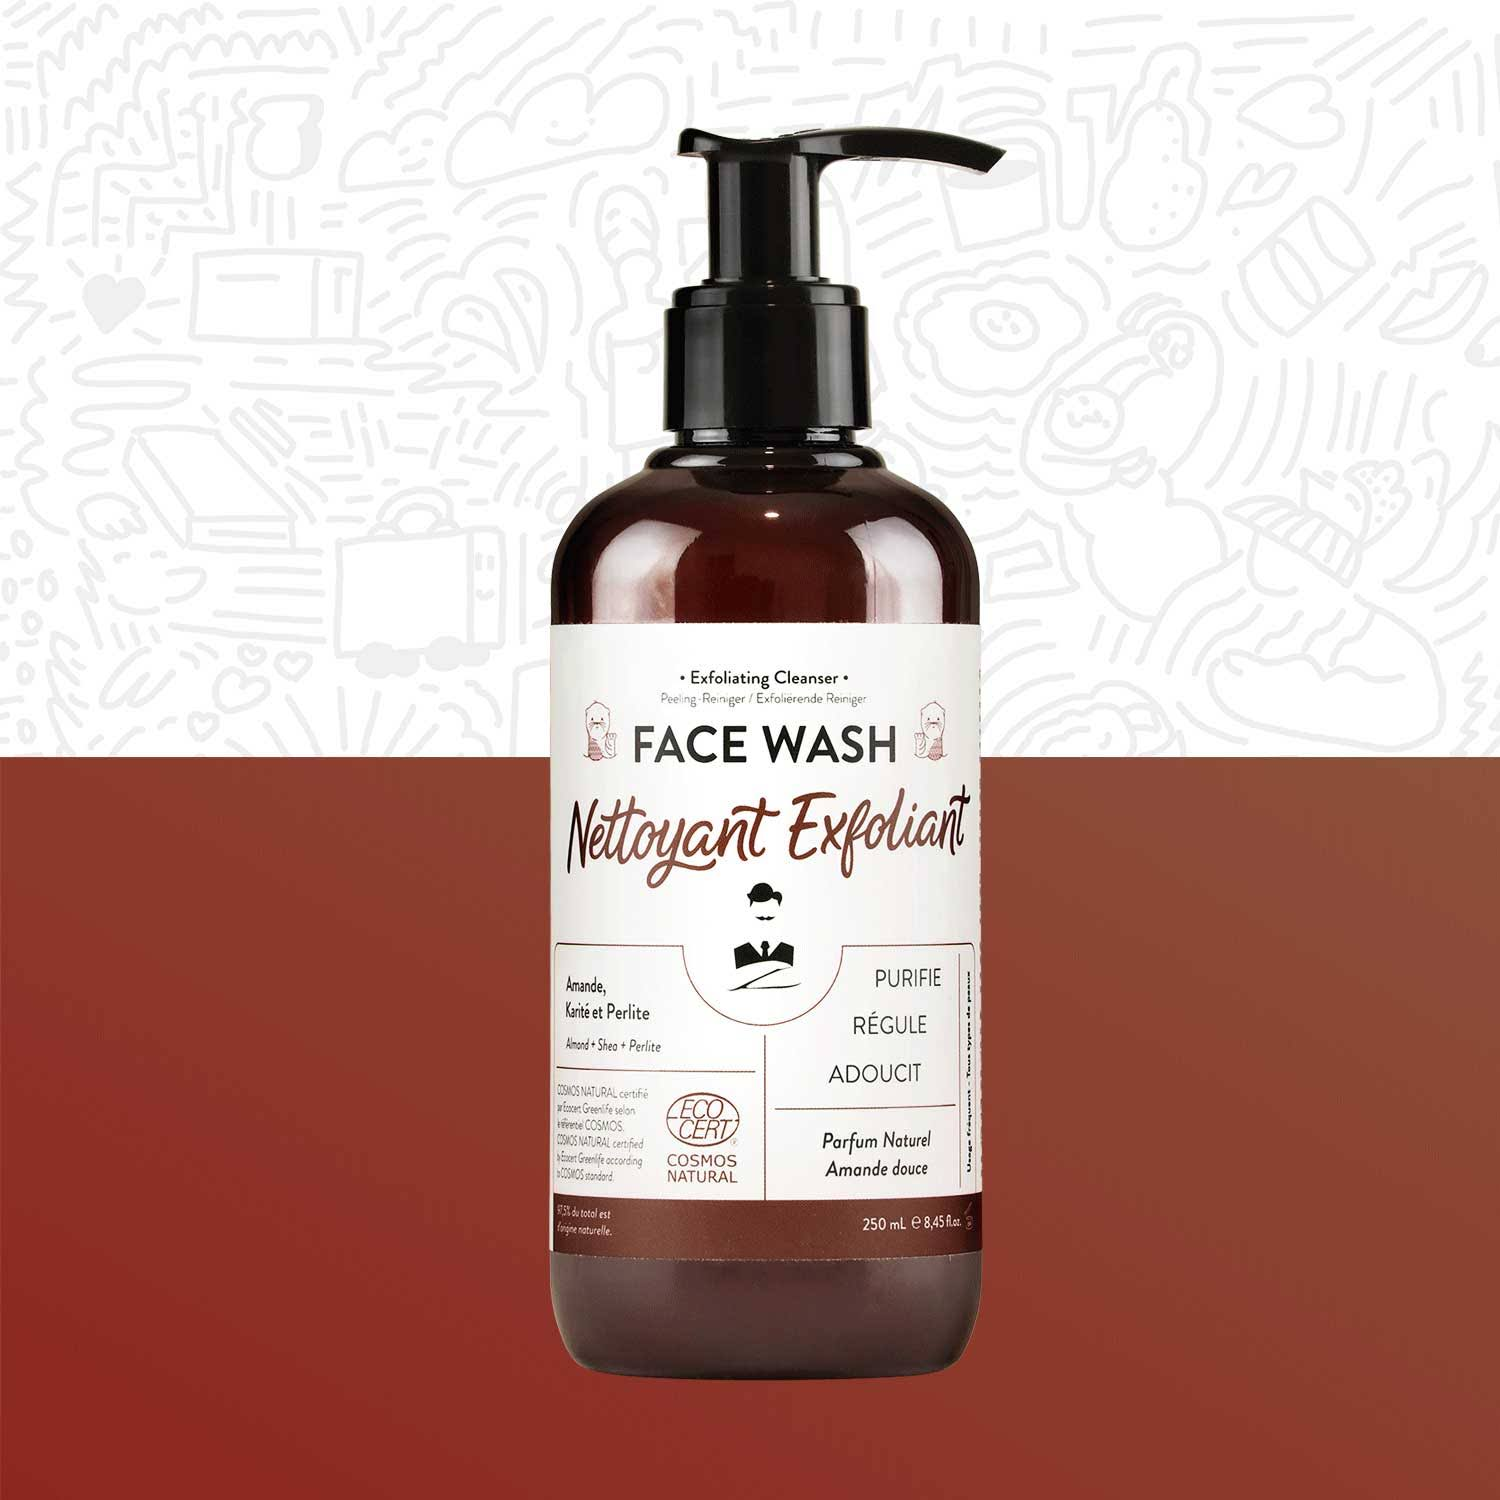 Monsieur Barbier I Face Wash